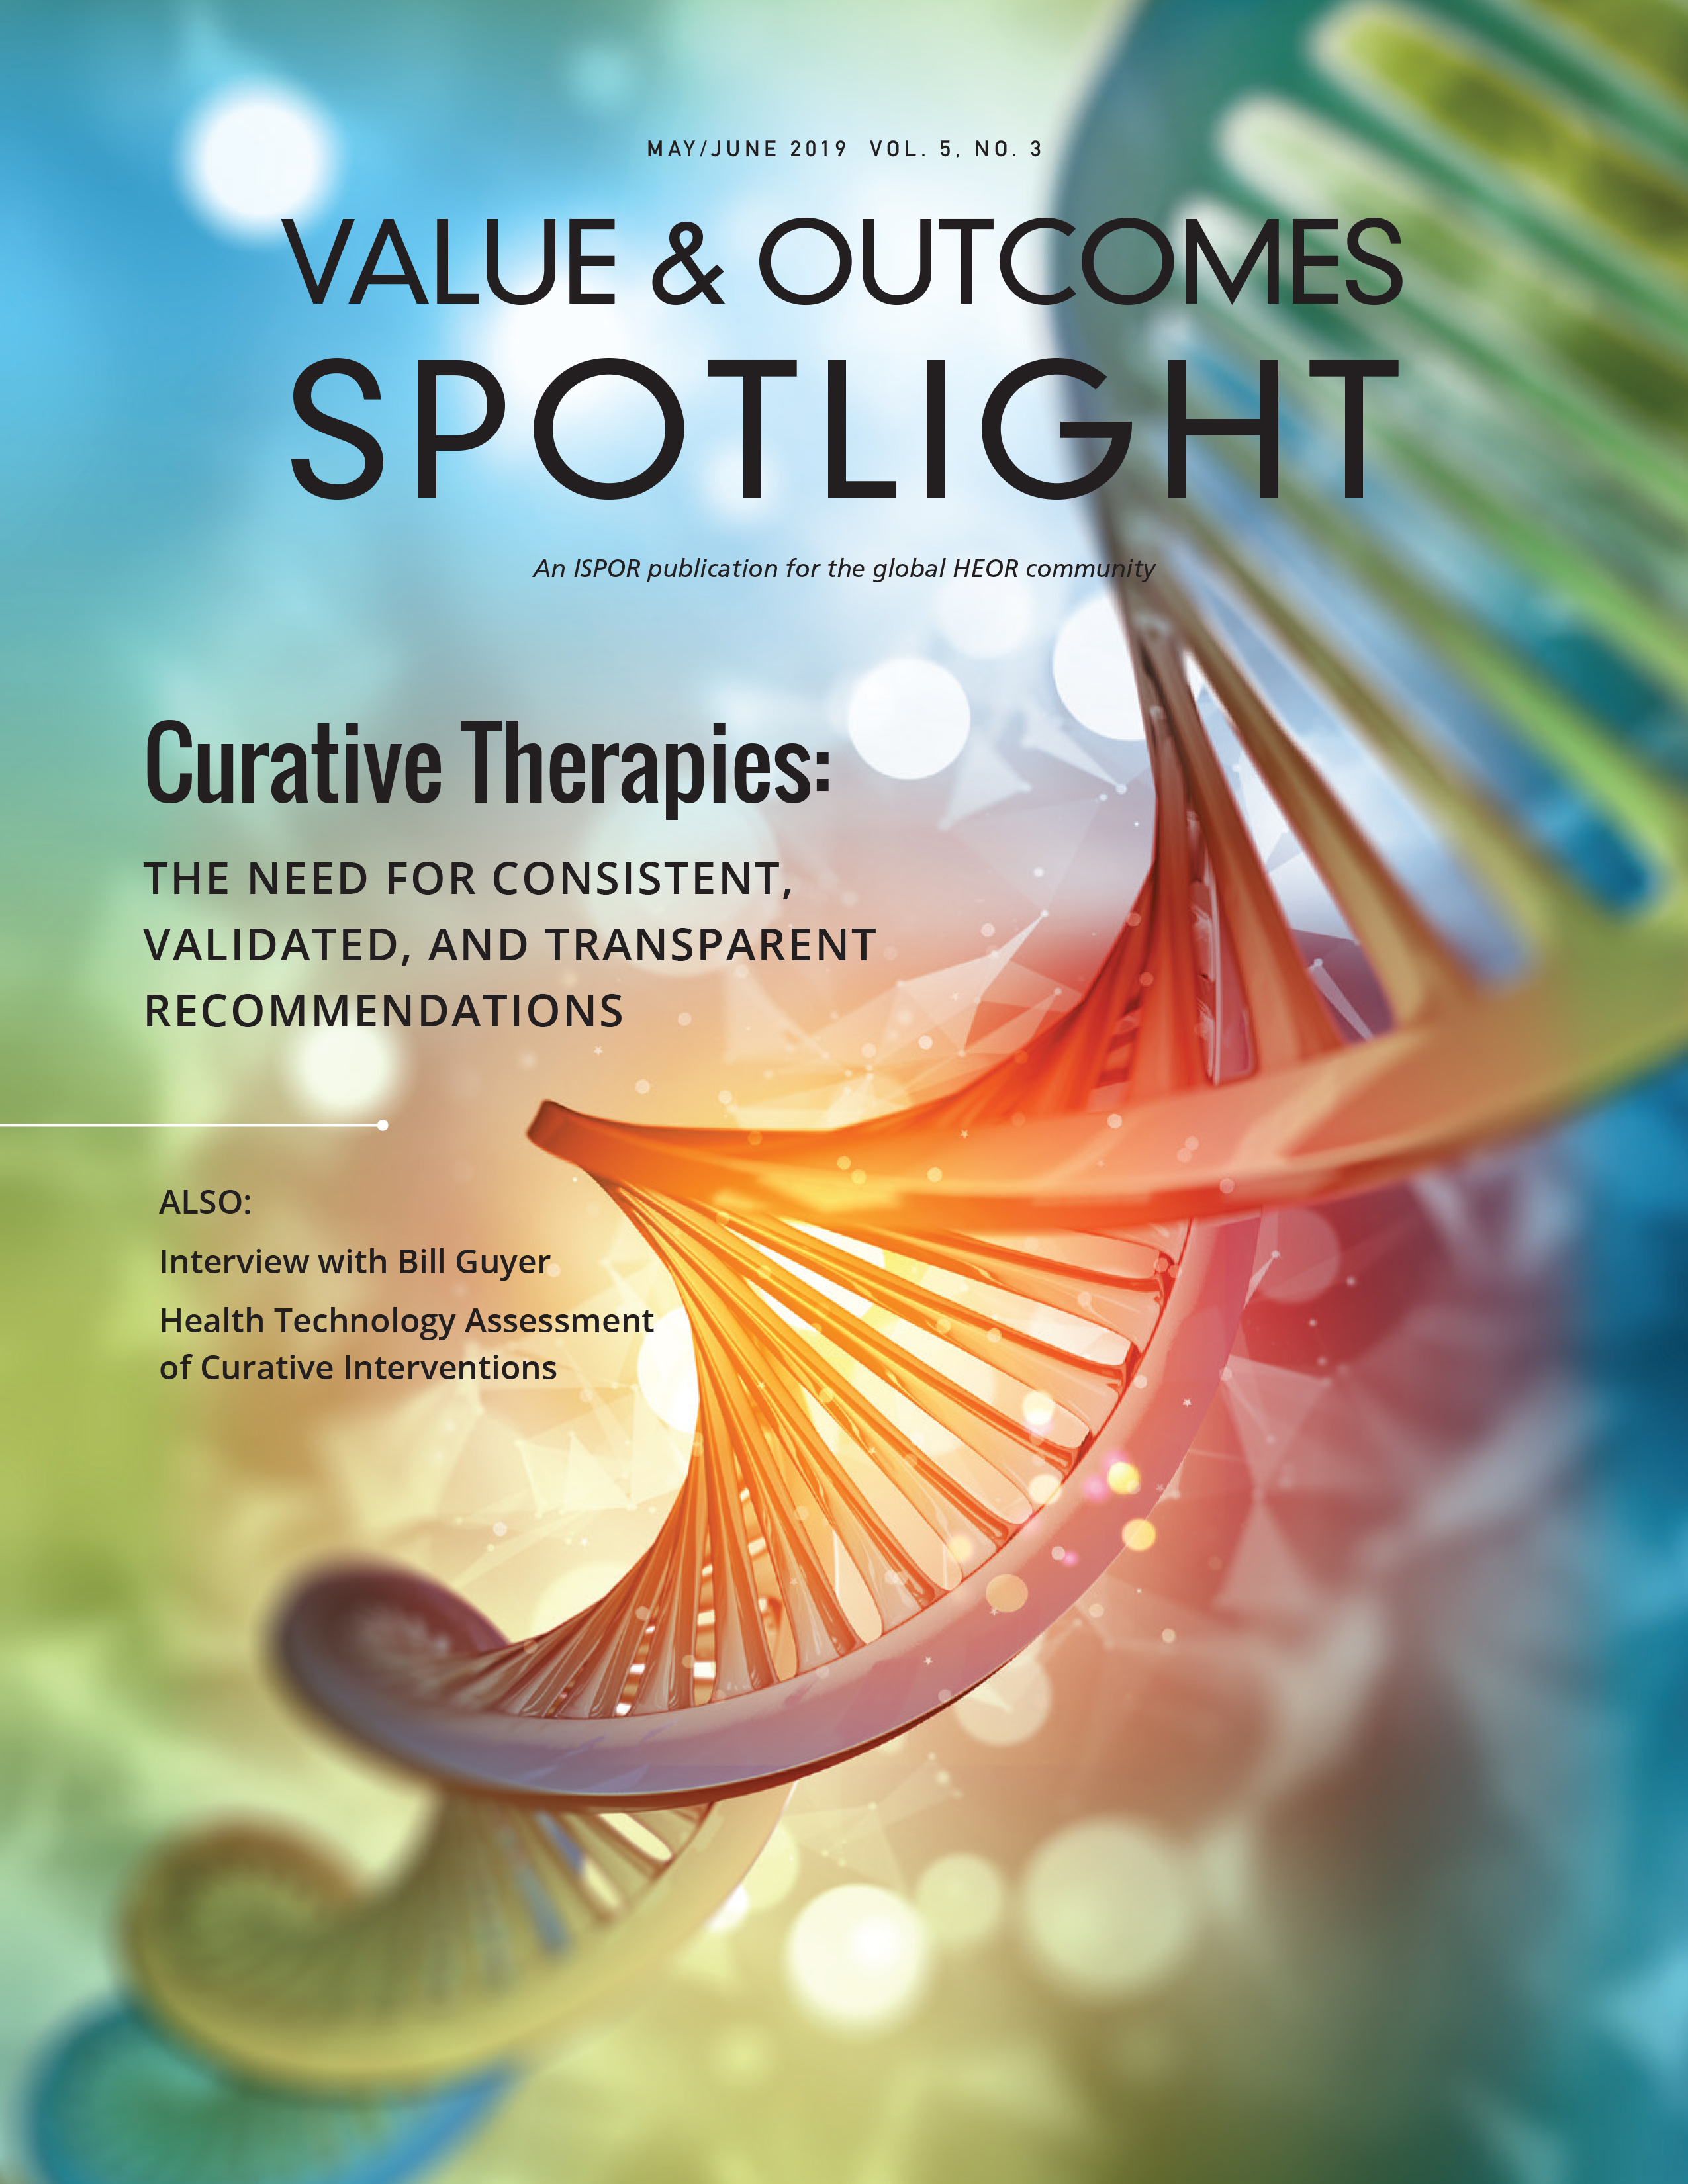 Value & Outcomes Spotlight Vol 5 Issue 3 - Curative Therapies: The need for consistent, validated and transparent recommendations